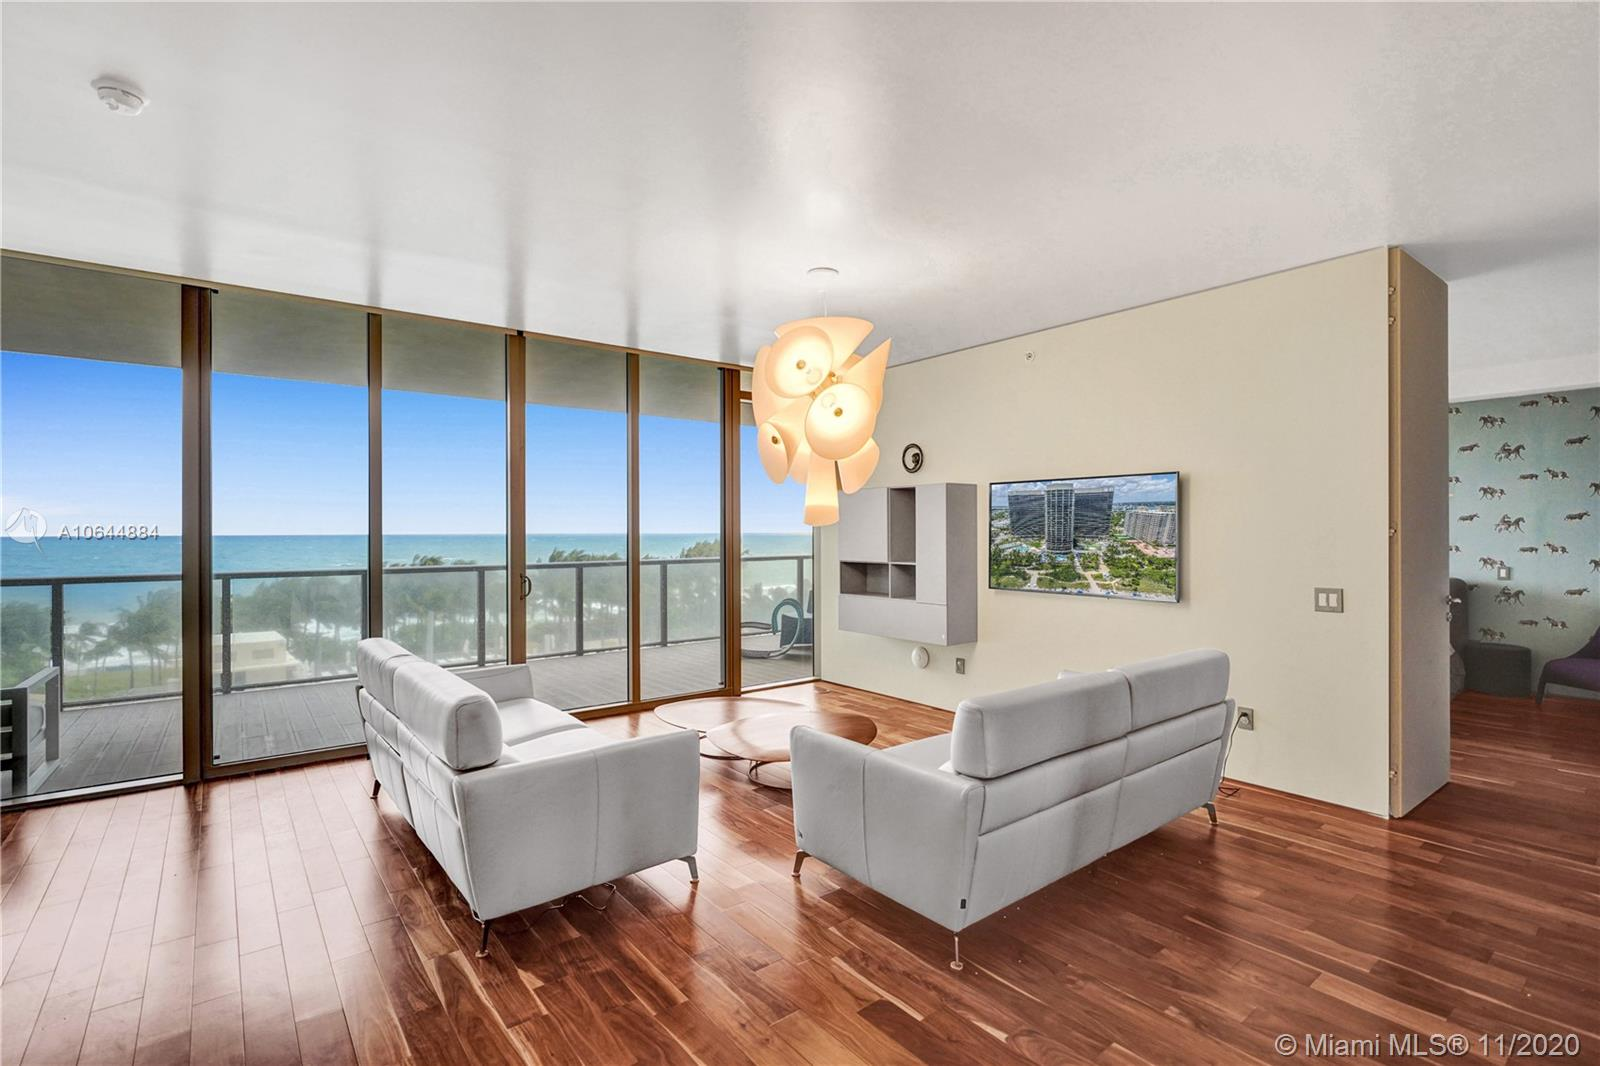 9701  COLLINS AVE #603S For Sale A10644884, FL